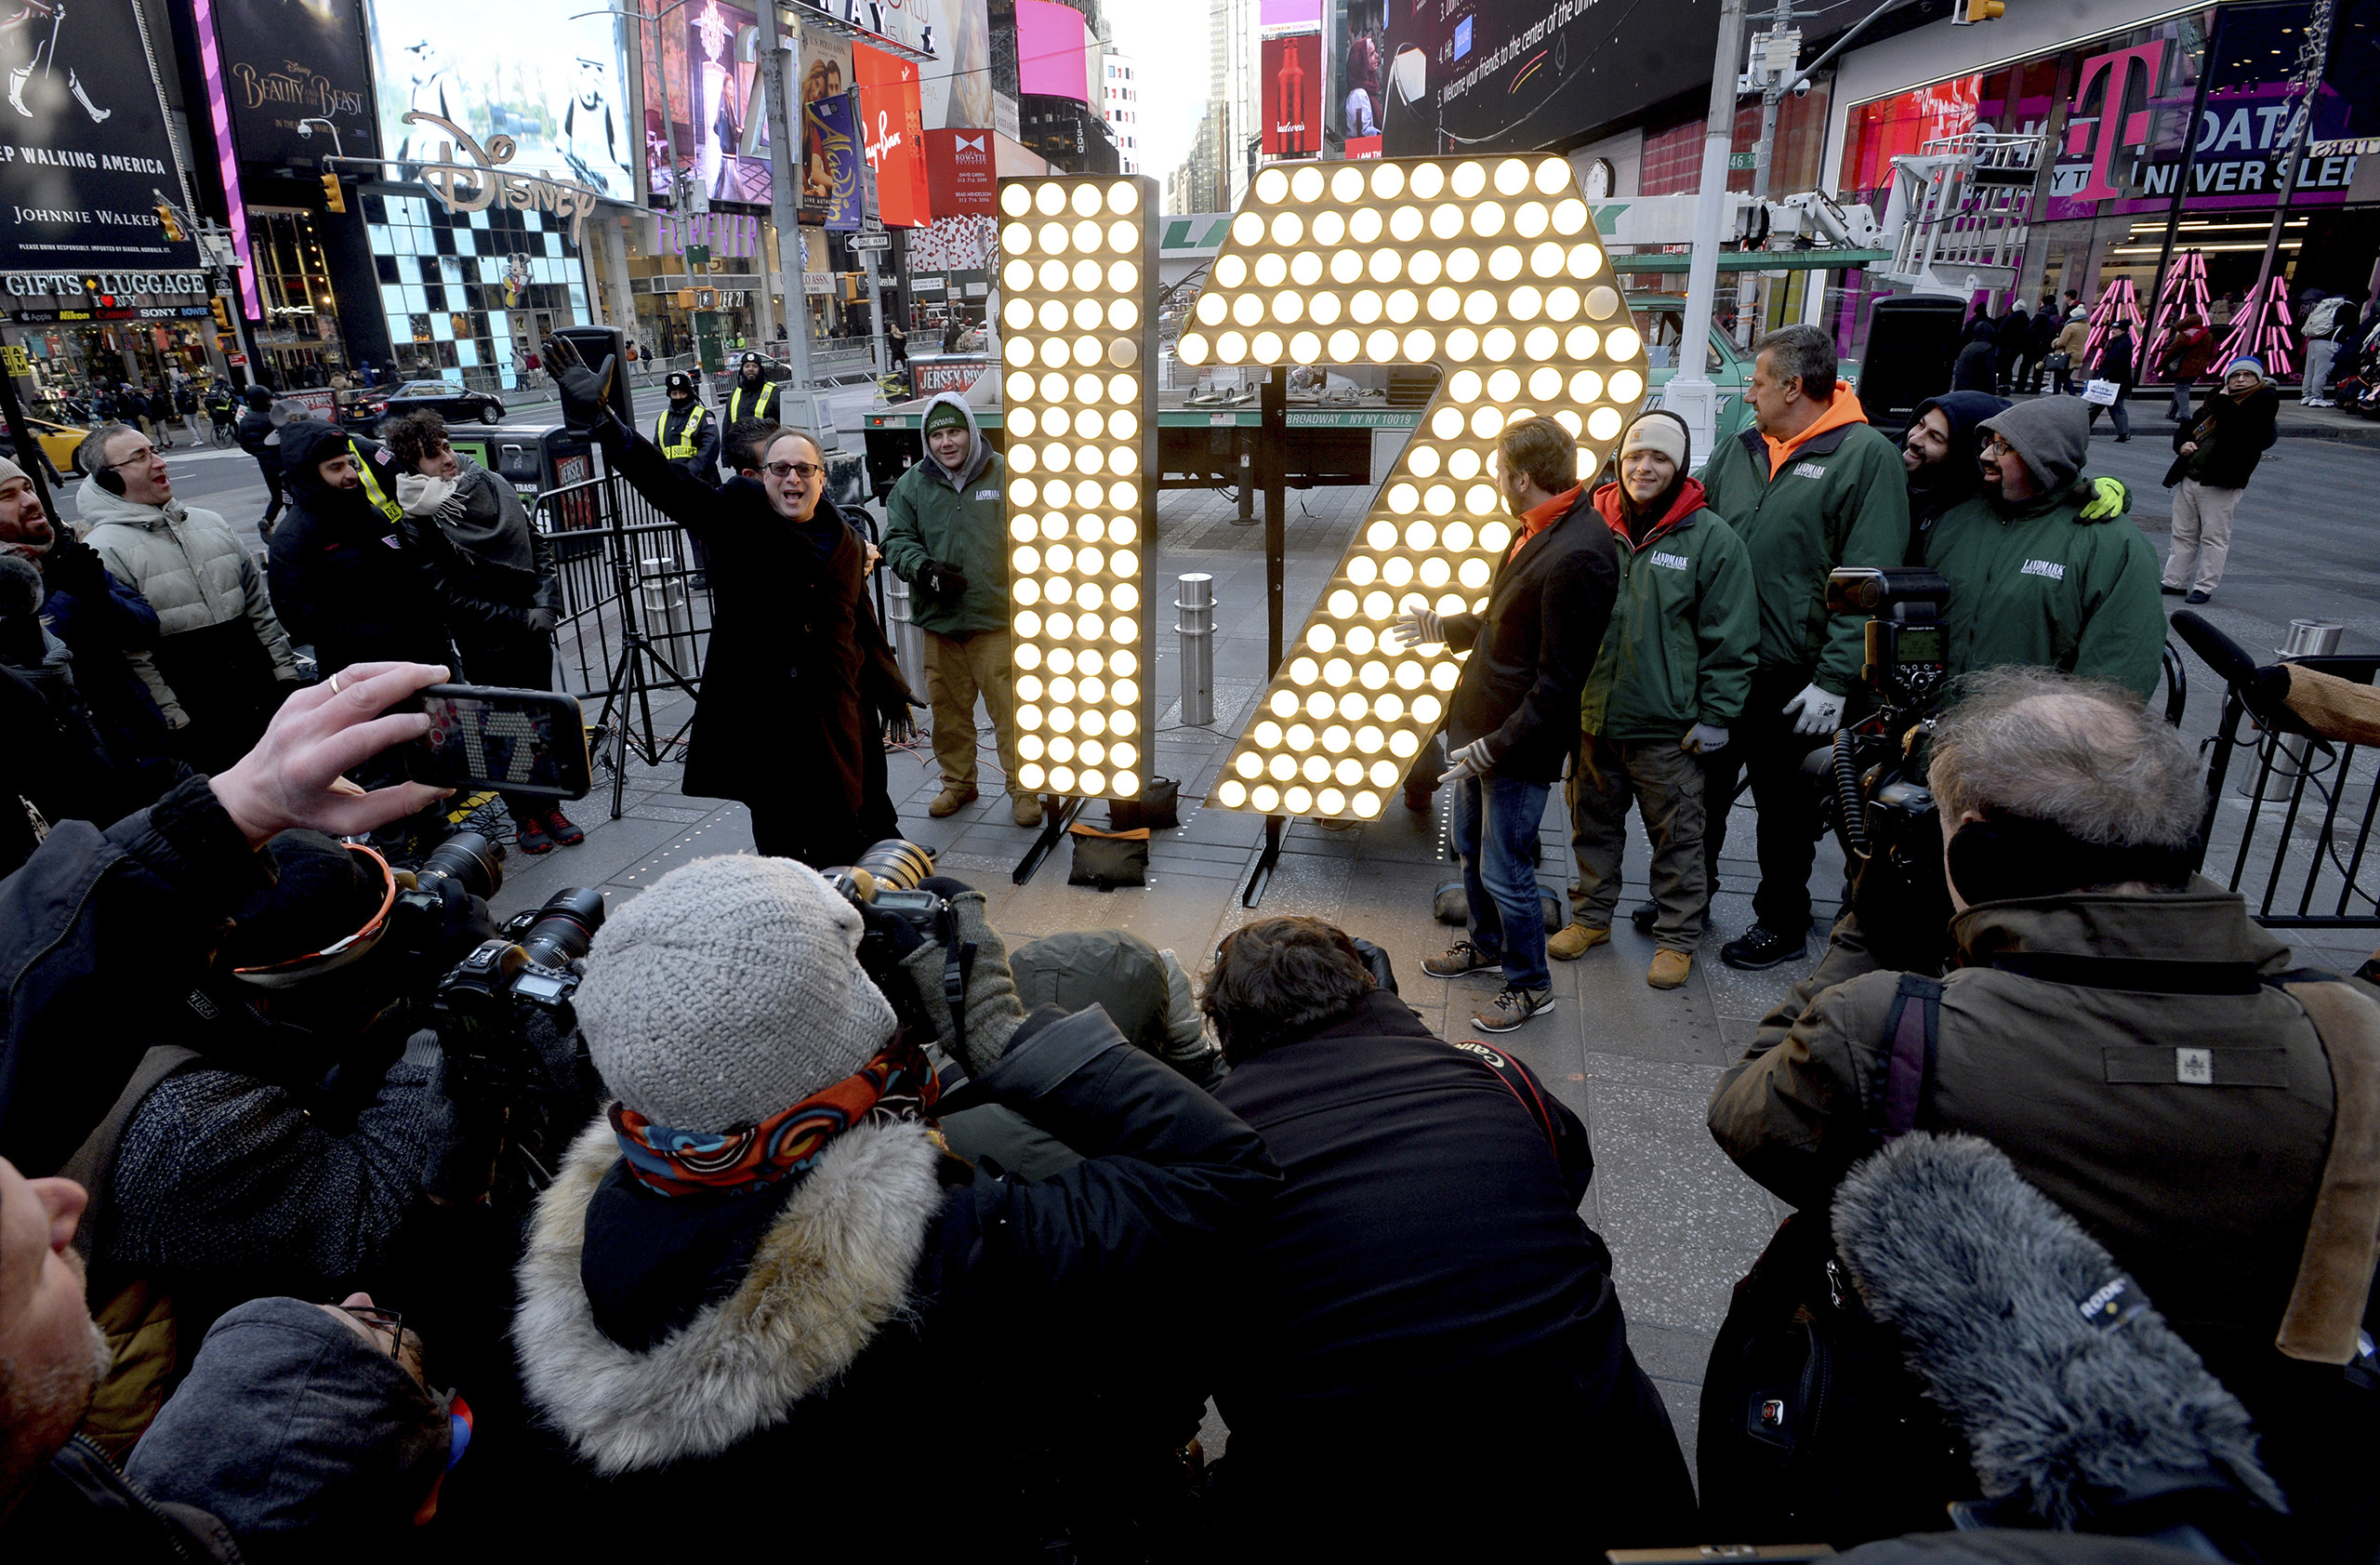 The numerals '1' and '7,' to be used to spell out '2-0-1-7' for the Times Square New Years Eve celebration, are unloaded from a flatbed truck before being unveiled in Times Square in New York City, on Dec. 15, 2016.